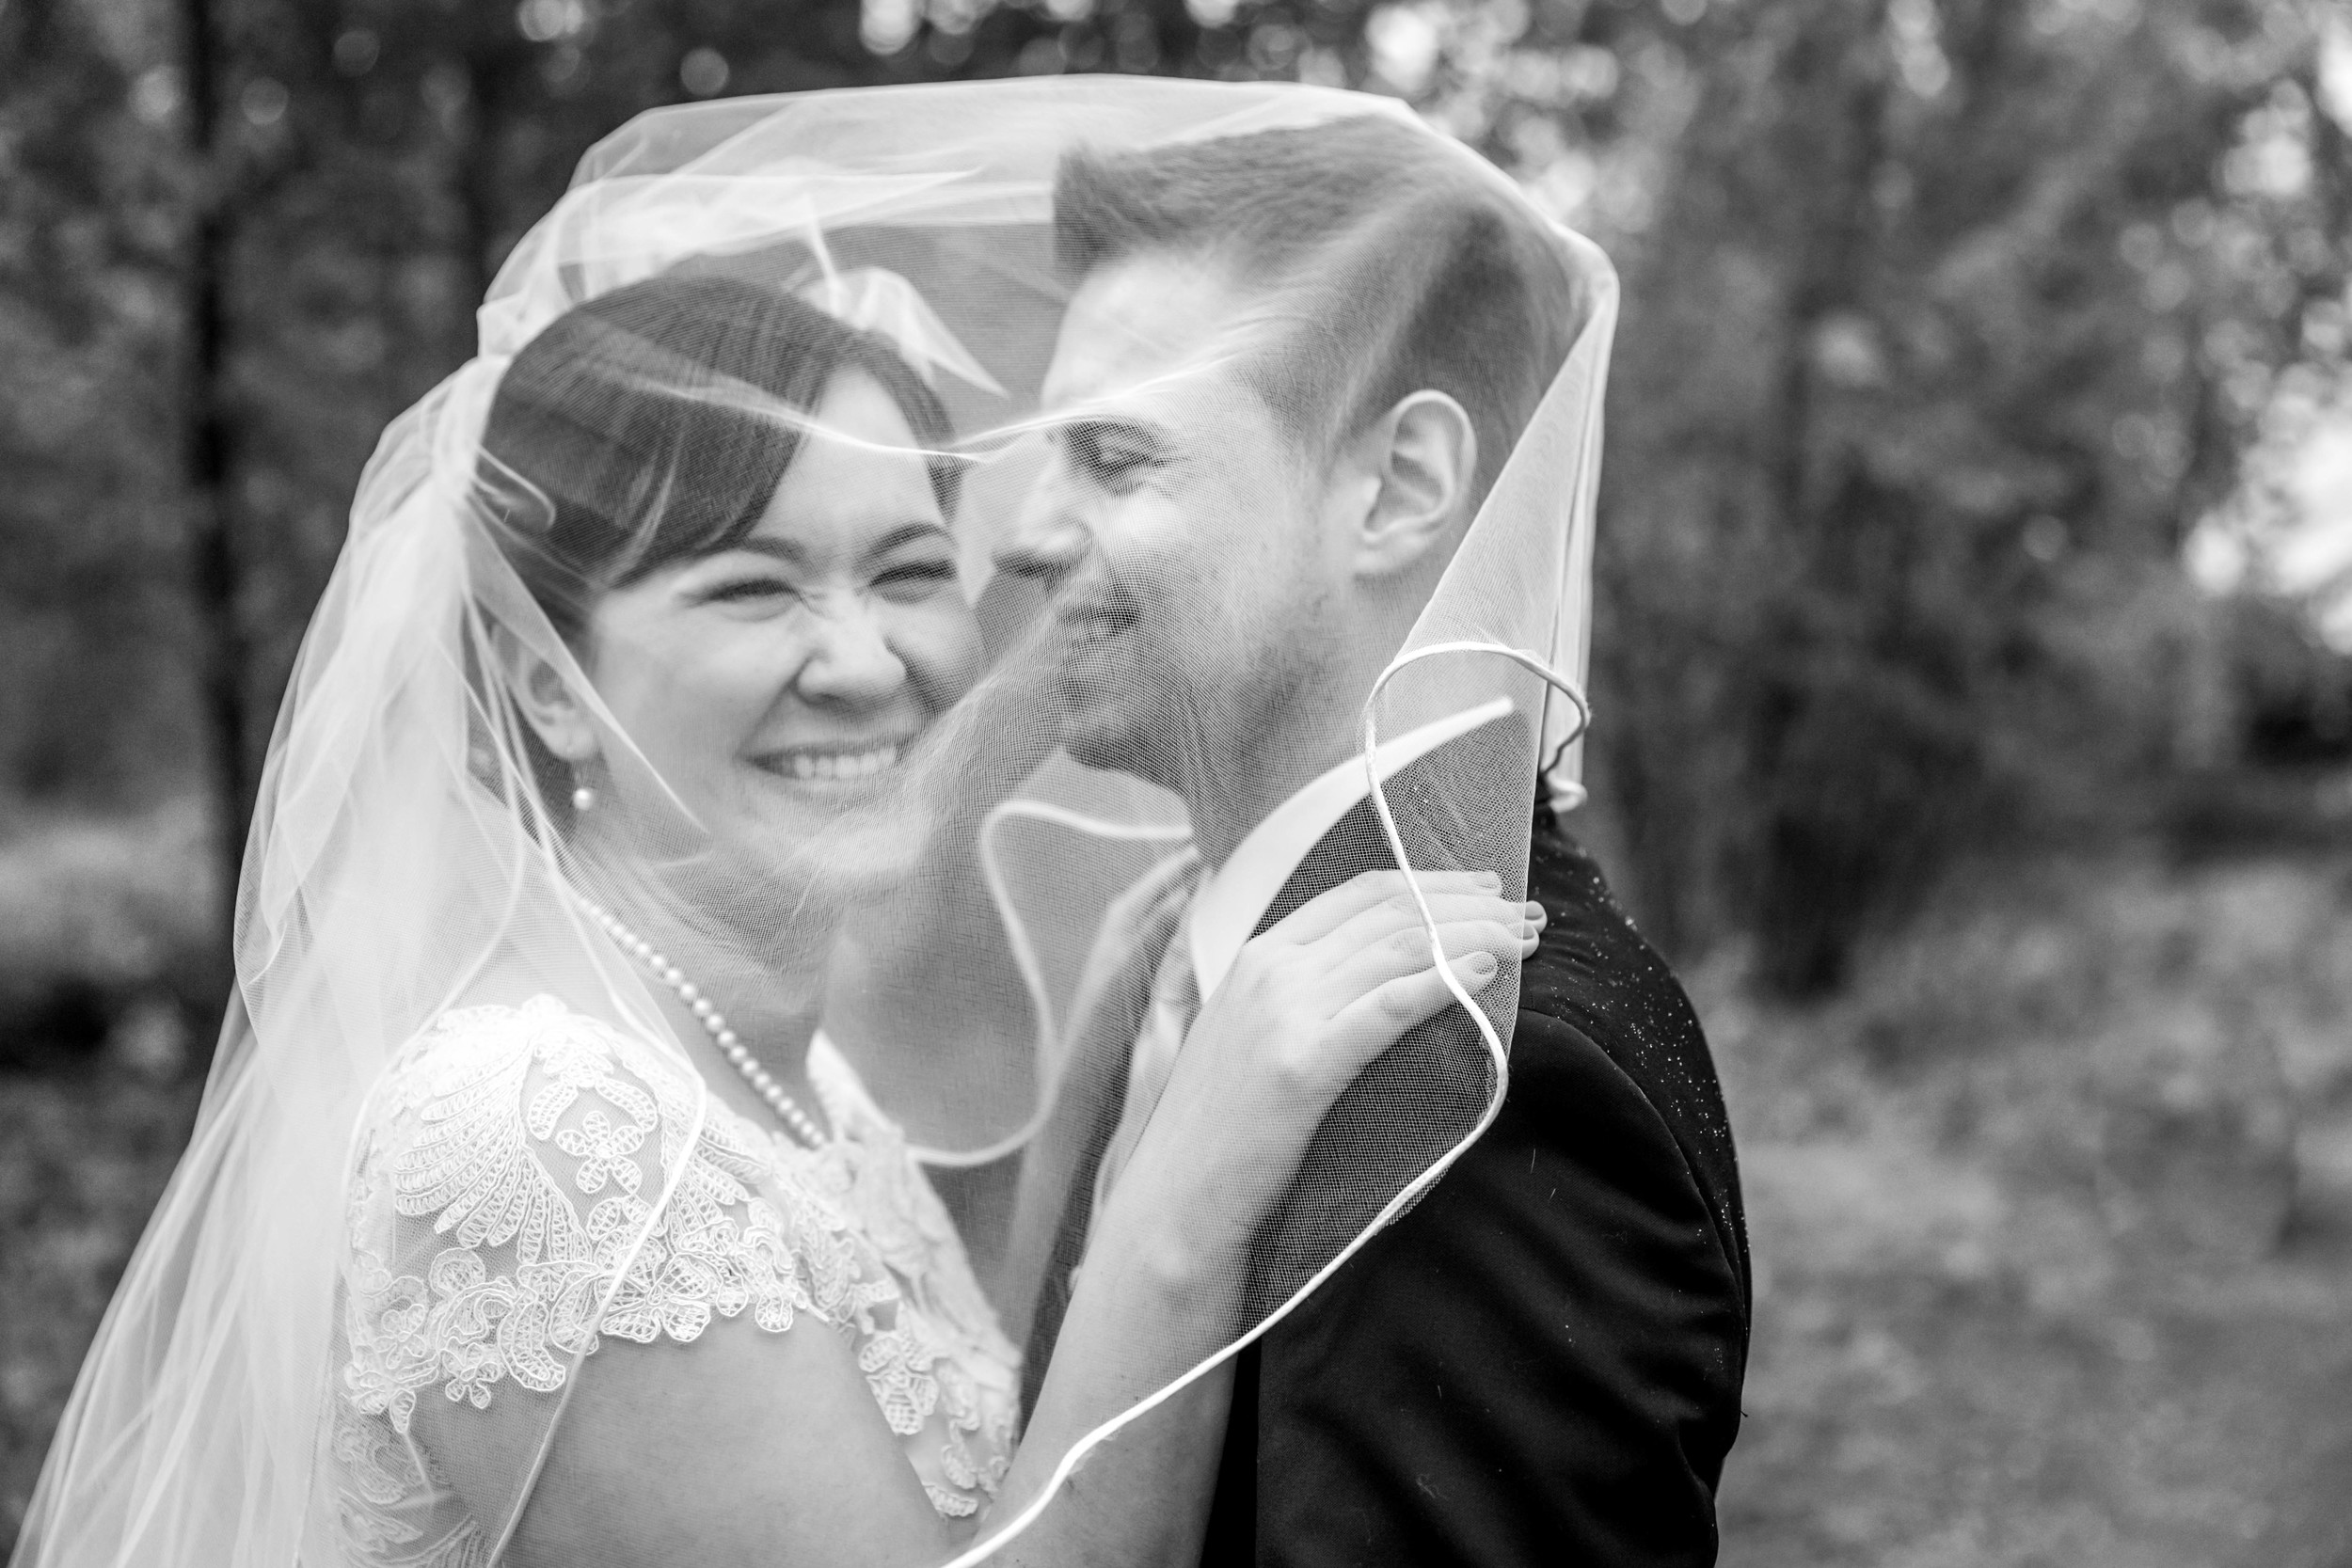 Mary was telling me that Jazon always seems to attract more mosquitoes than she does. We laughed about how this veil shot was really like a marital mosquito net. I didn't realize it really was such an inside joke until a bottle of bug spray even worked its way into one of the wedding toasts! Maybe the veil will need to become a part of outdoor Alaska adventures? ;)